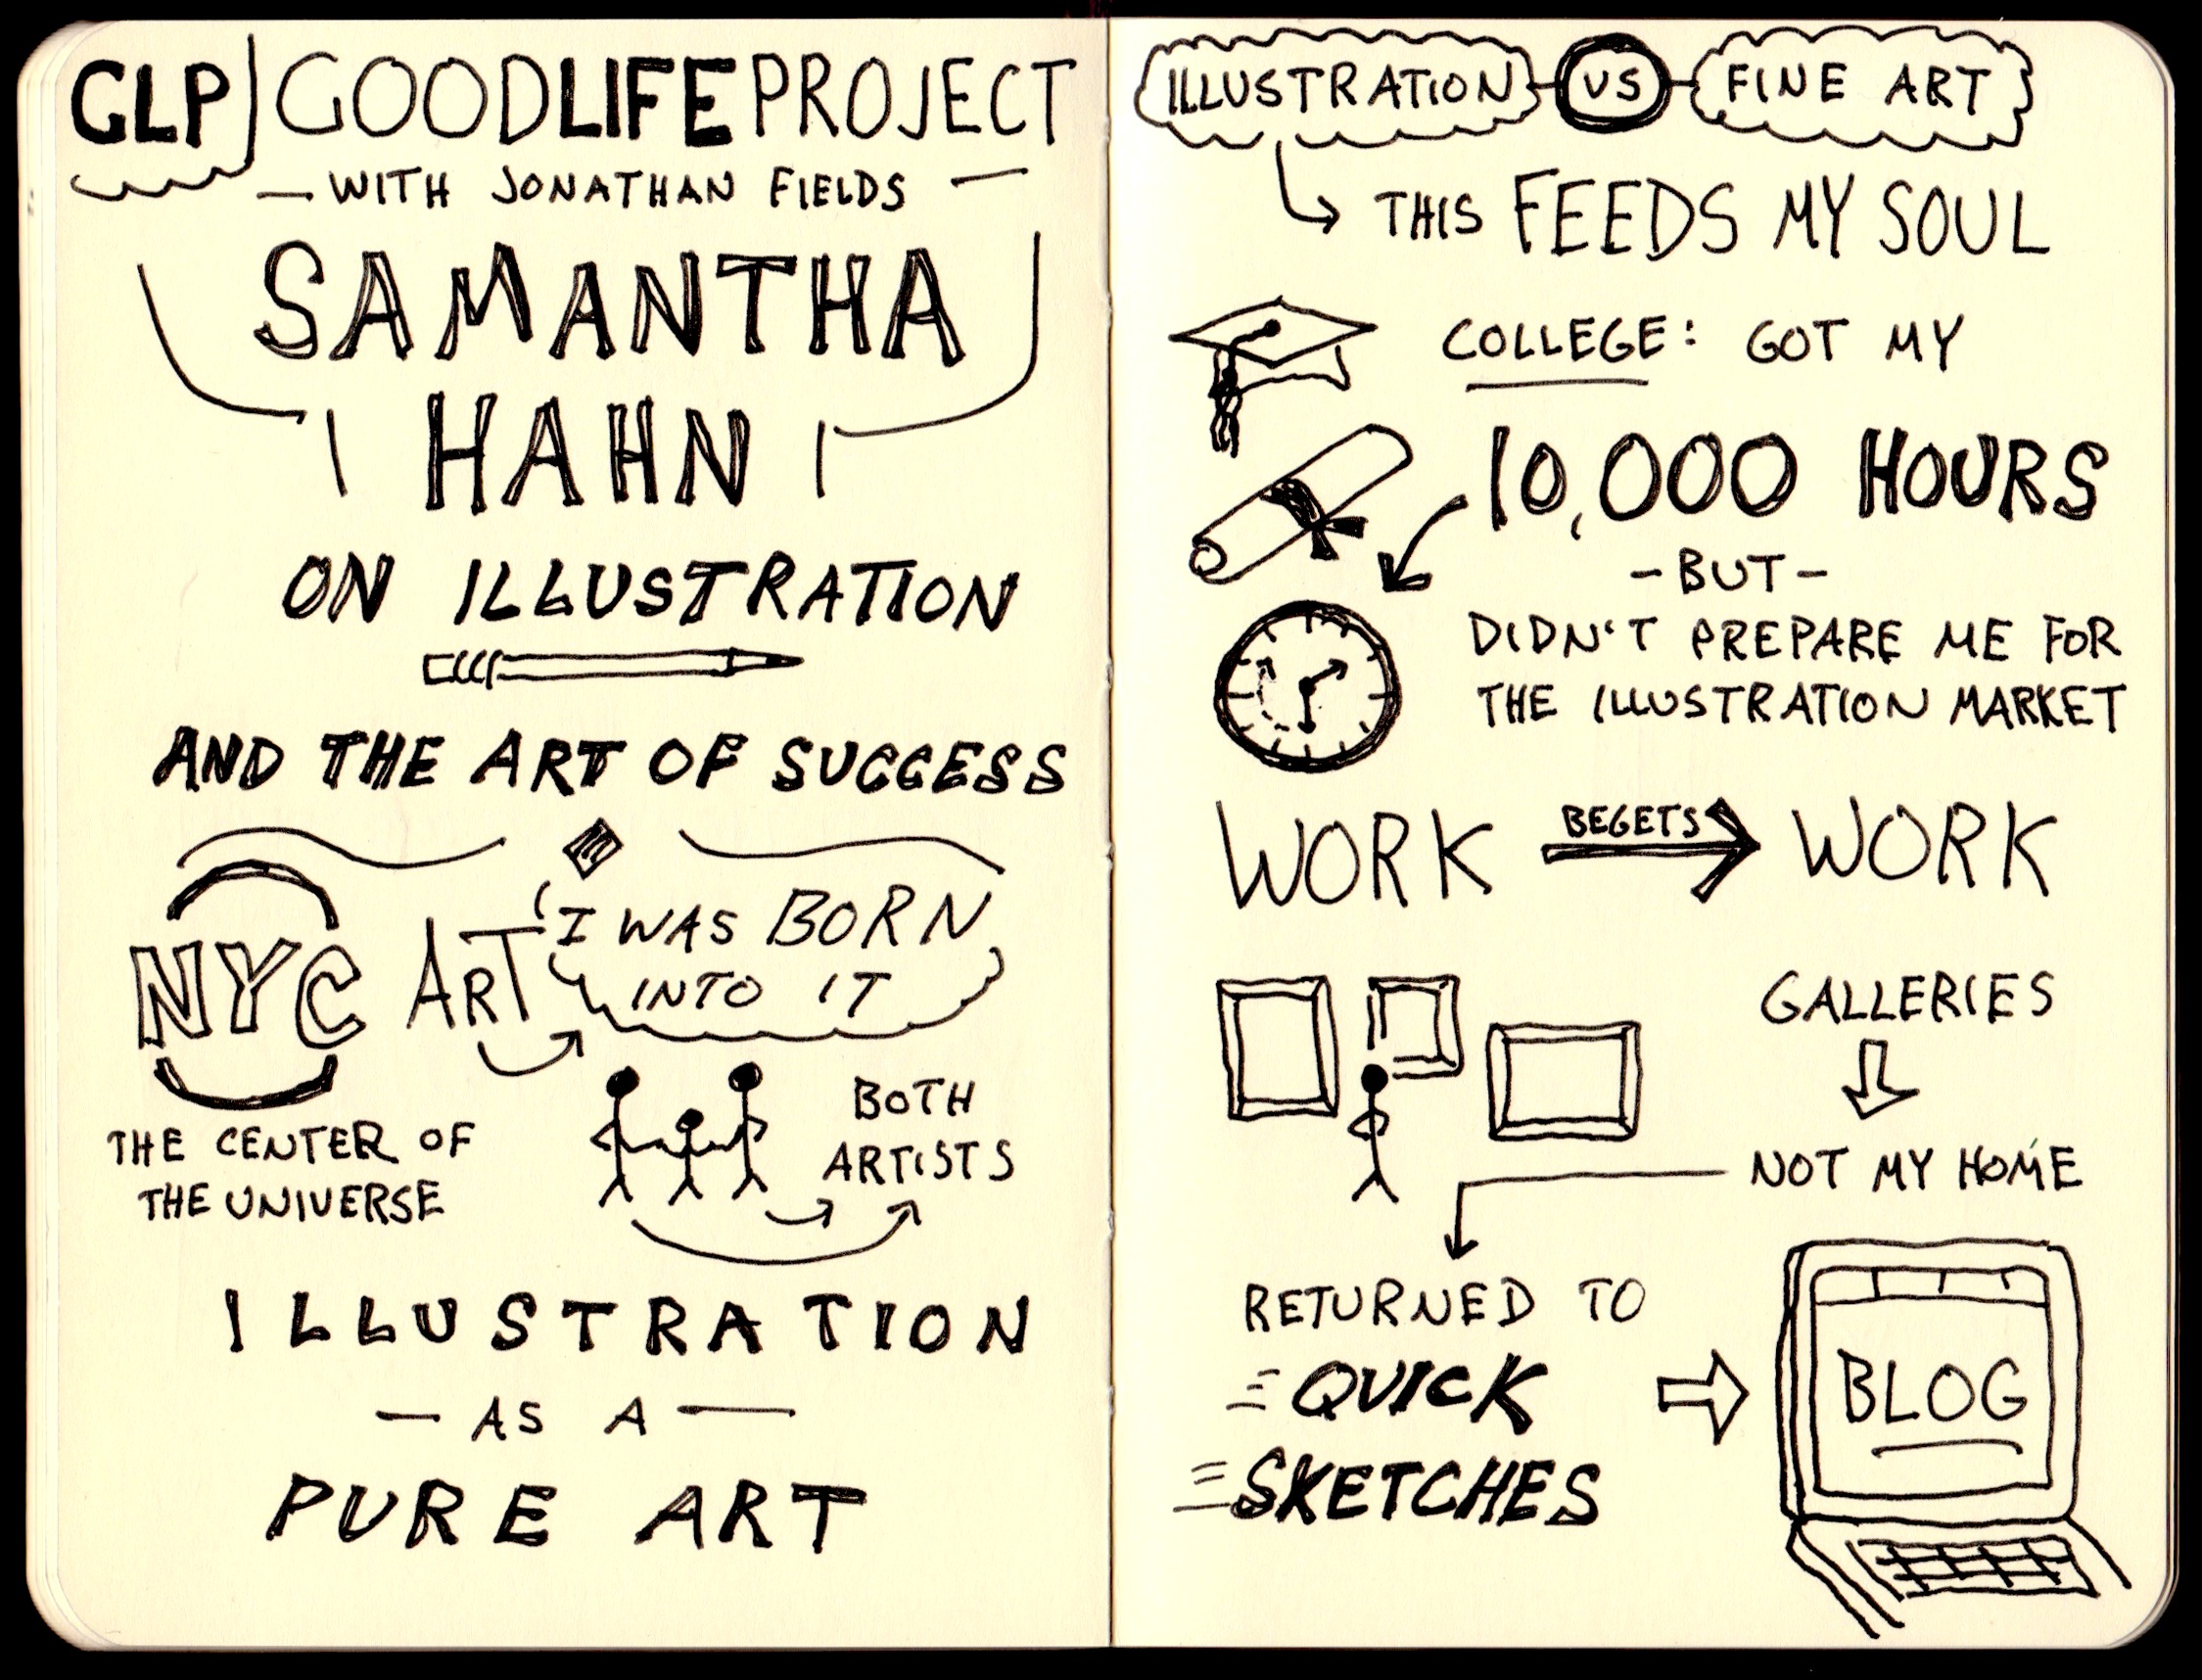 Good Life Project Samantha Hahn Sketchnotes (1) - Jonathan Fields - Doug Neill - illustration as pure art, college, 10,000 hours, work begets work, galleries, quick sketches, blog